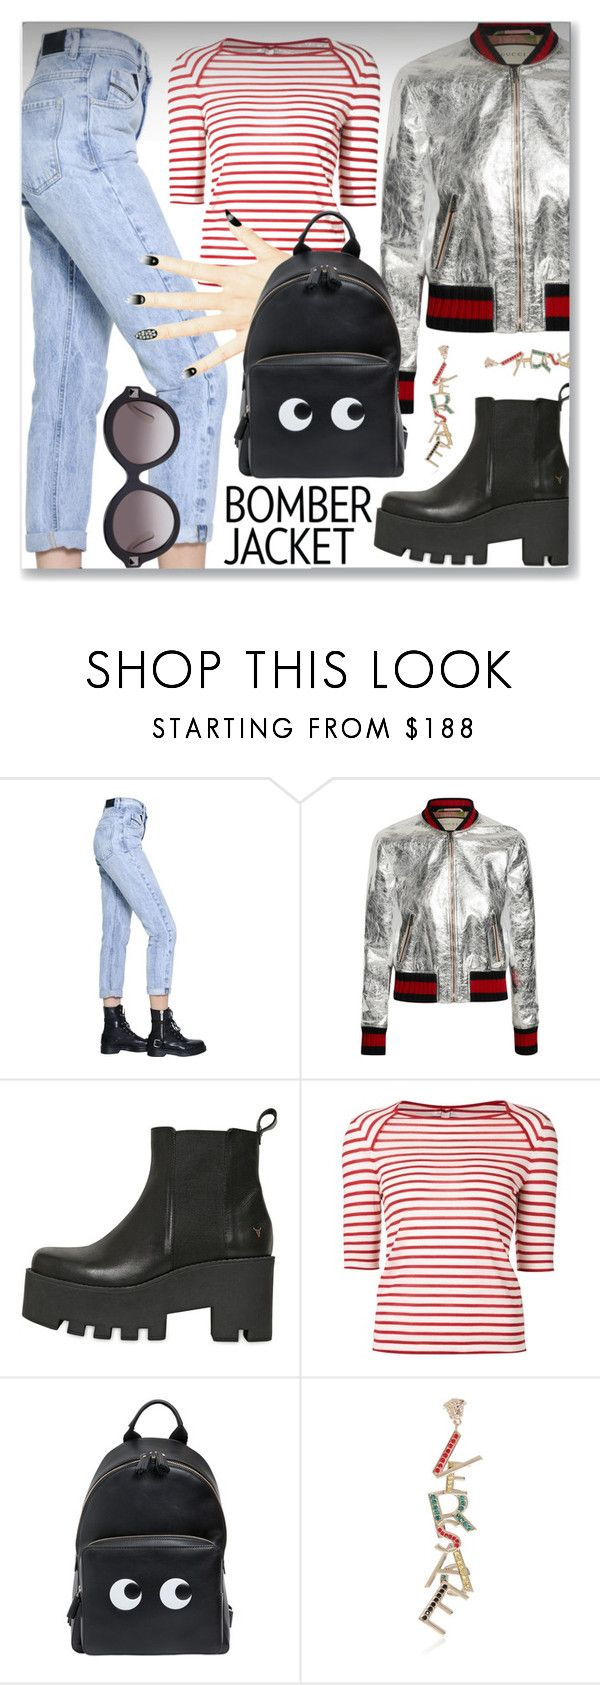 """""""Winter Style: Bomber Jackets"""" by dressedbyrose ❤ liked on Polyvore featuring Diesel Black Gold, Gucci, Windsor Smith, Yves Saint Laurent, Anya Hindmarch, Versace, Valentino, women's clothing, women and female"""